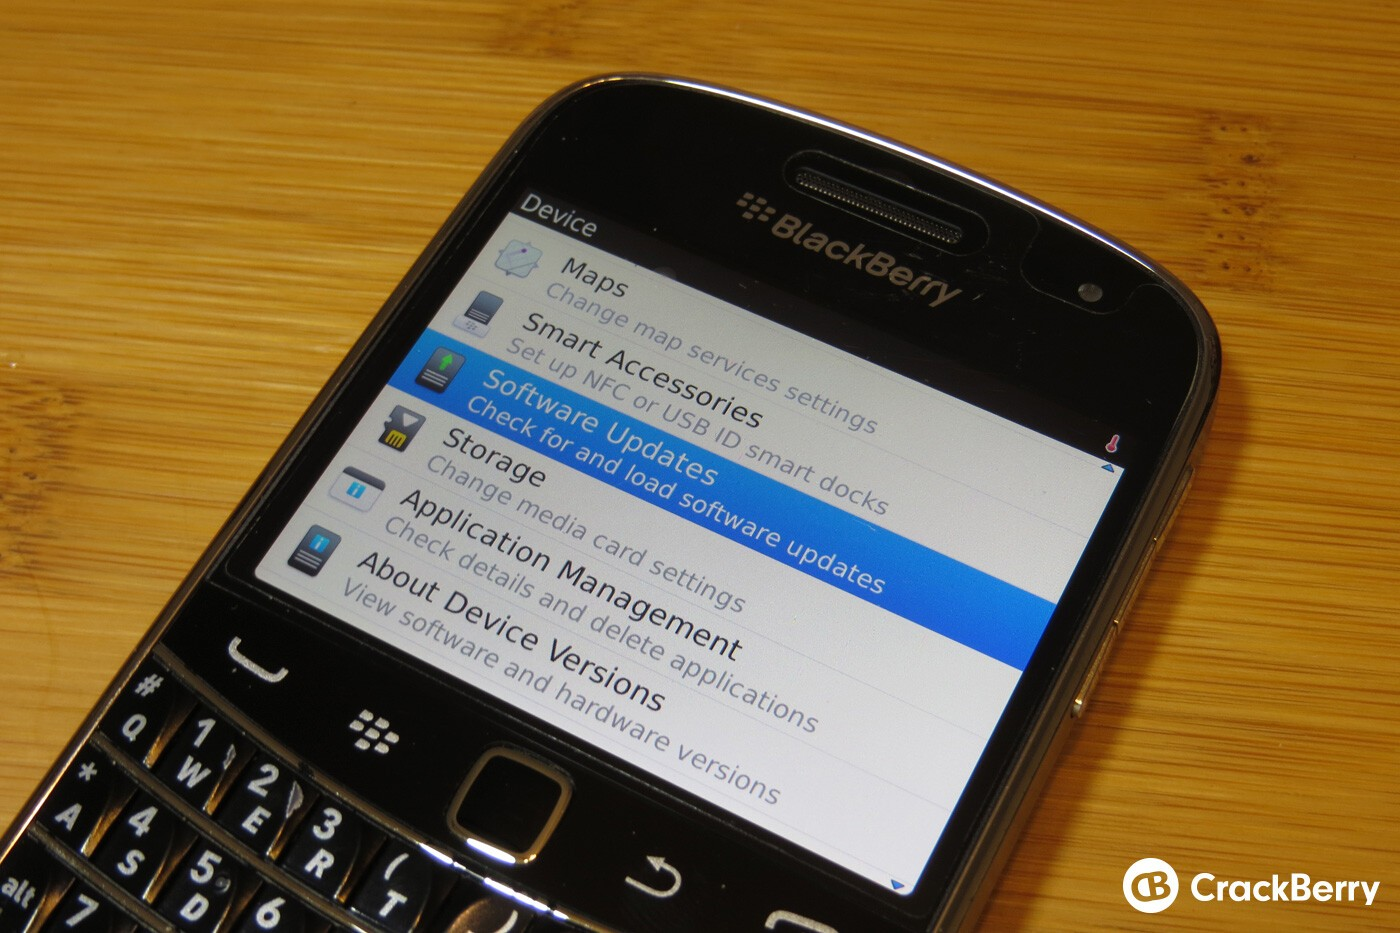 Updating blackberry 9900 date and time not updating windows 7